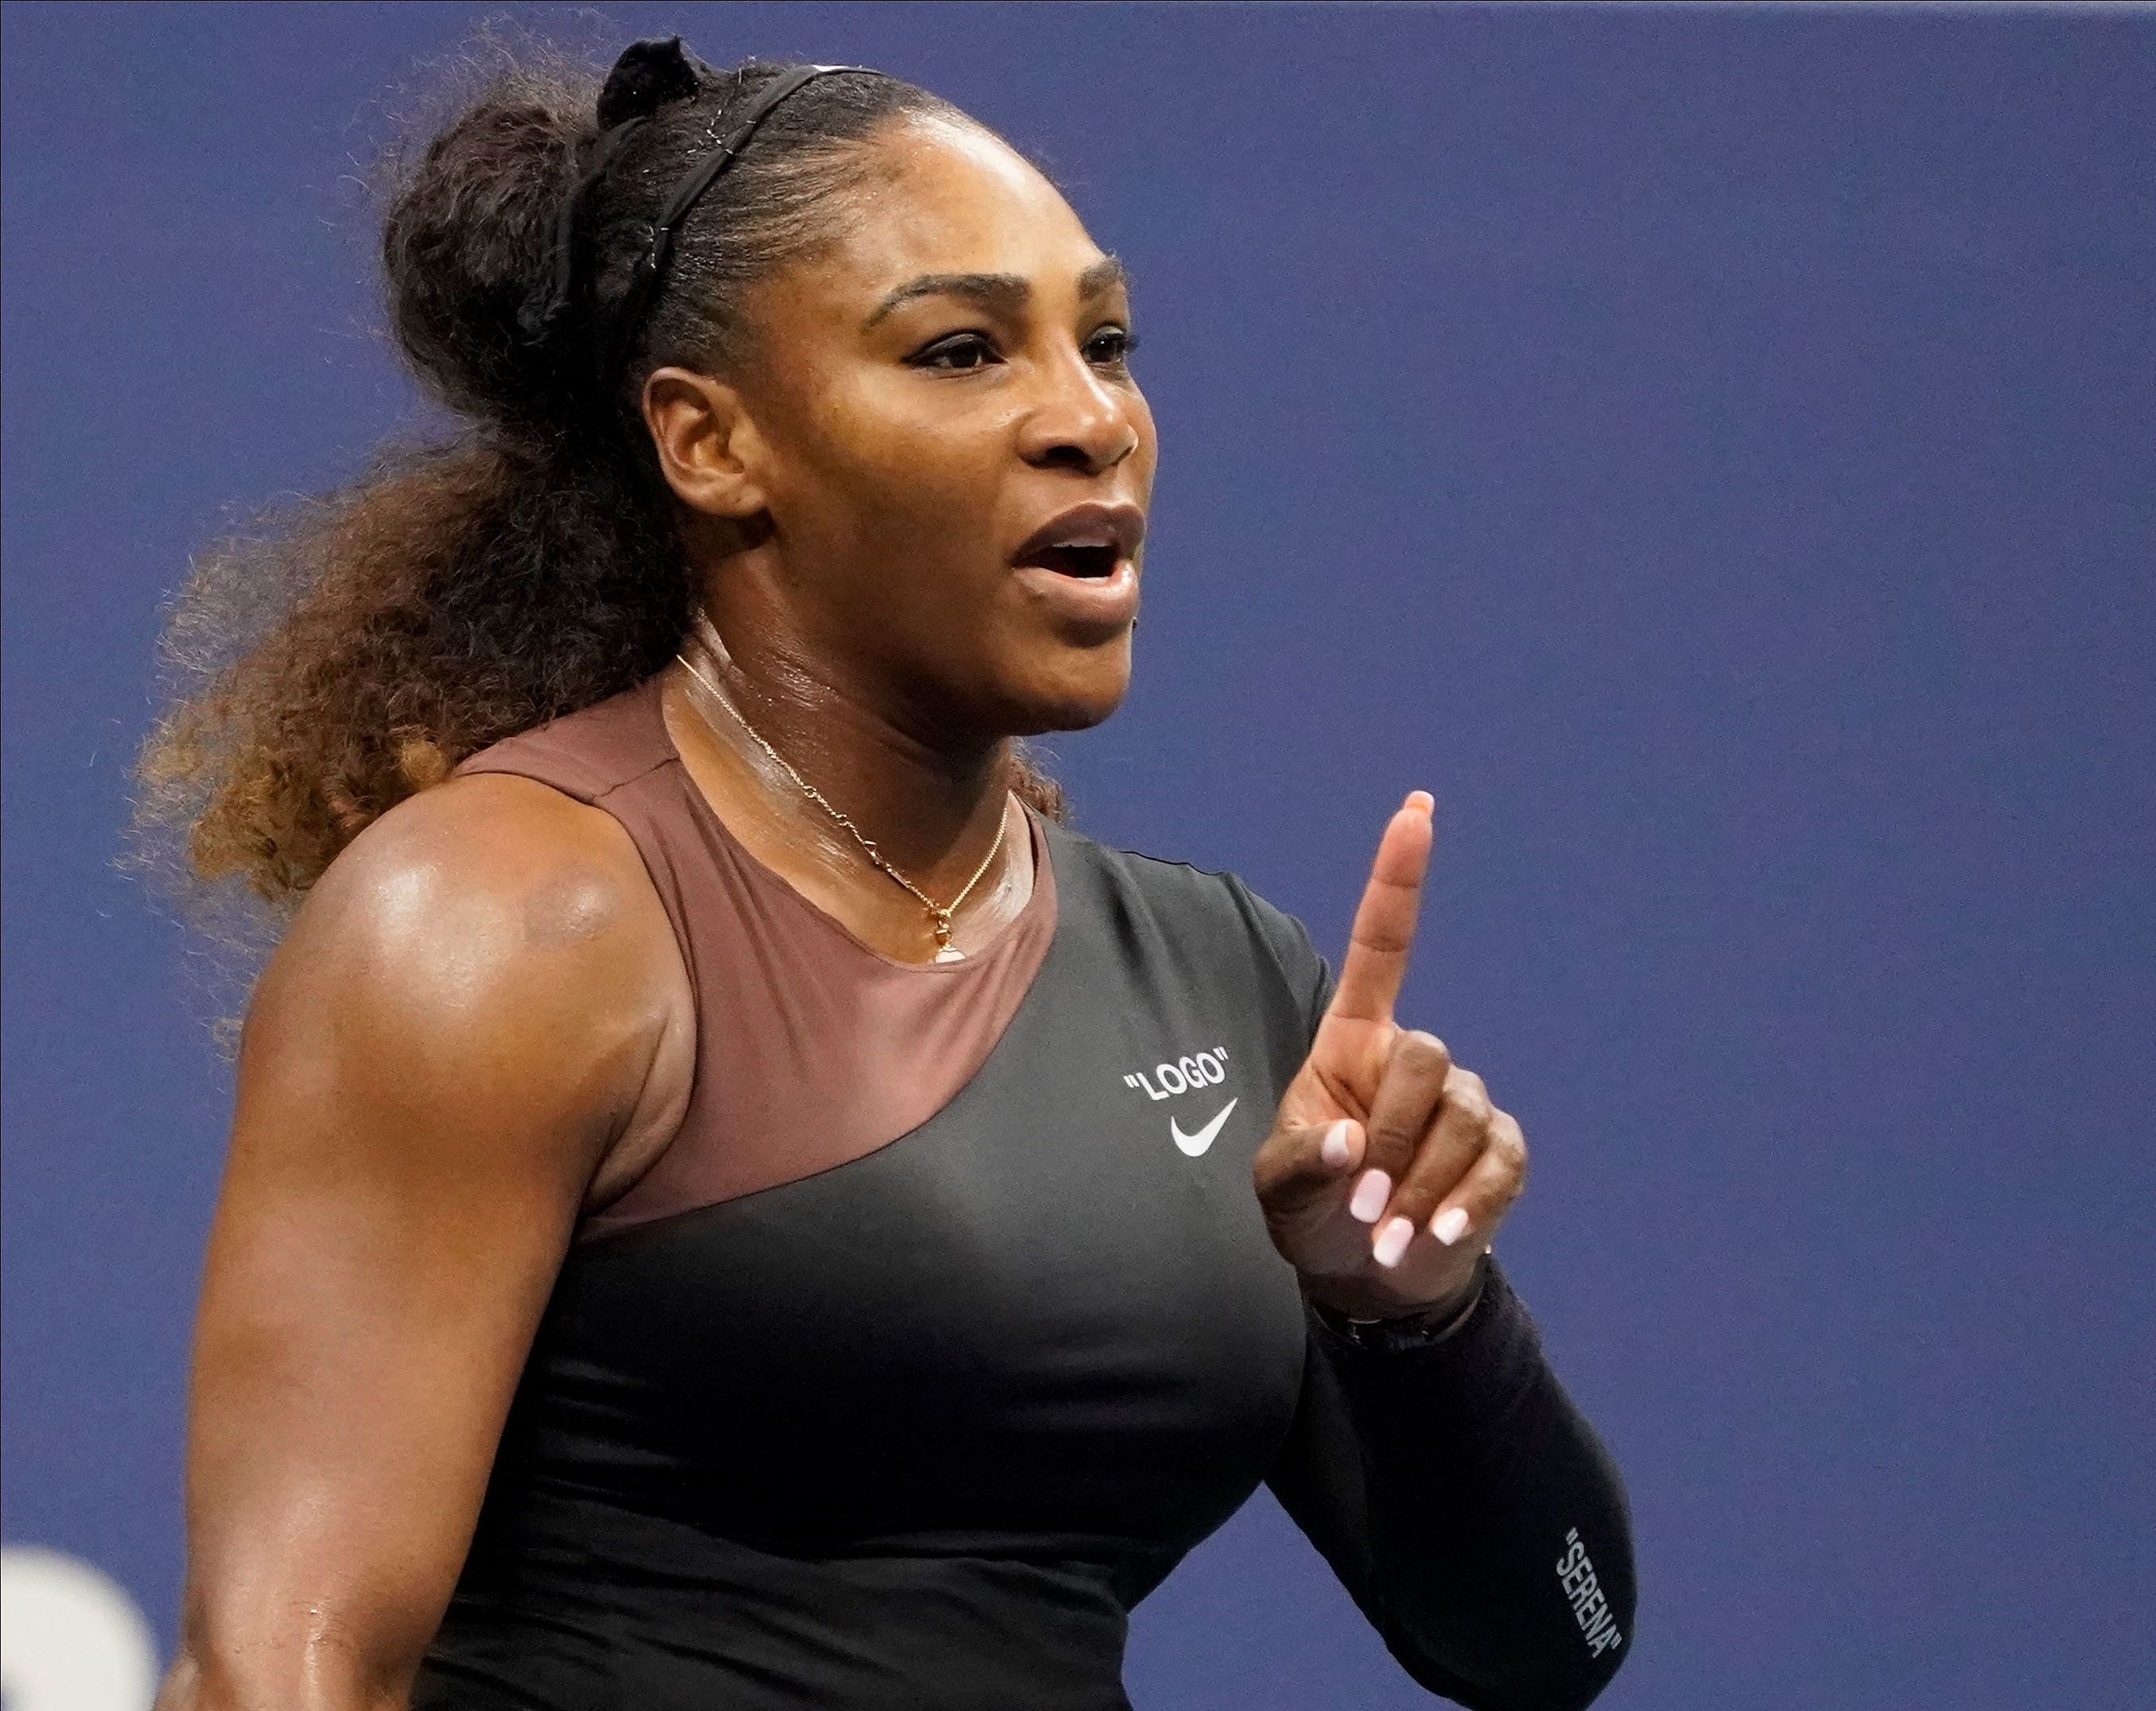 Newspaper's Cartoon Of Serena Williams Condemned As 'Racist And